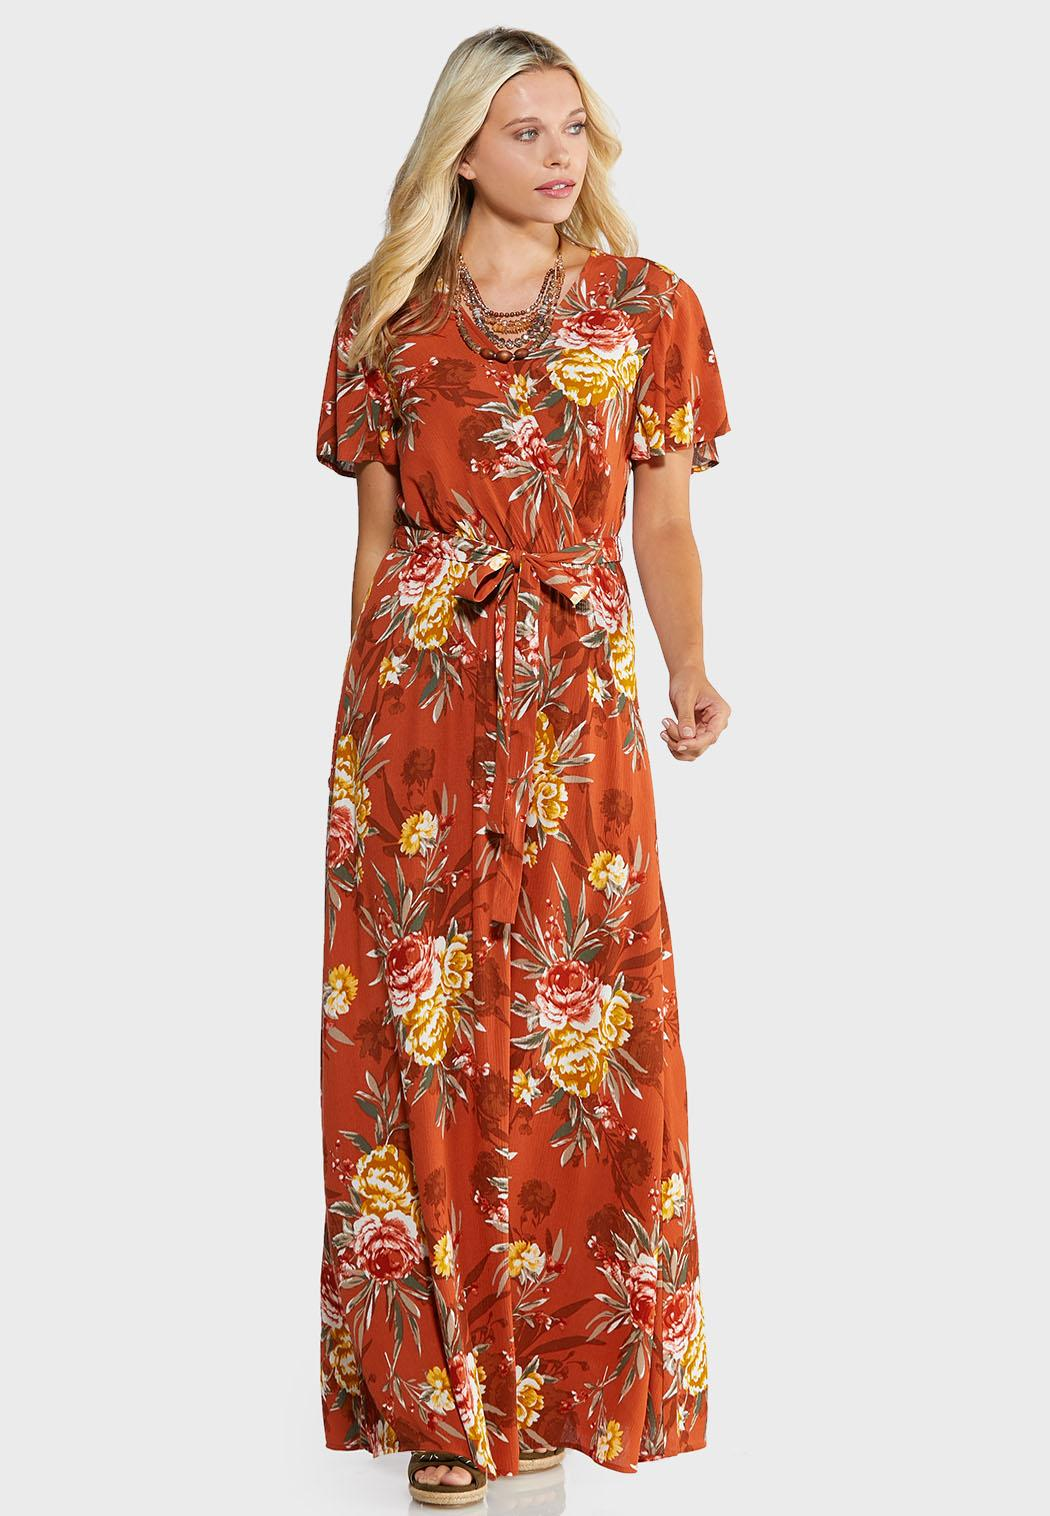 Plus Size Floral Flutter Maxi Dress Maxi Cato Fashions